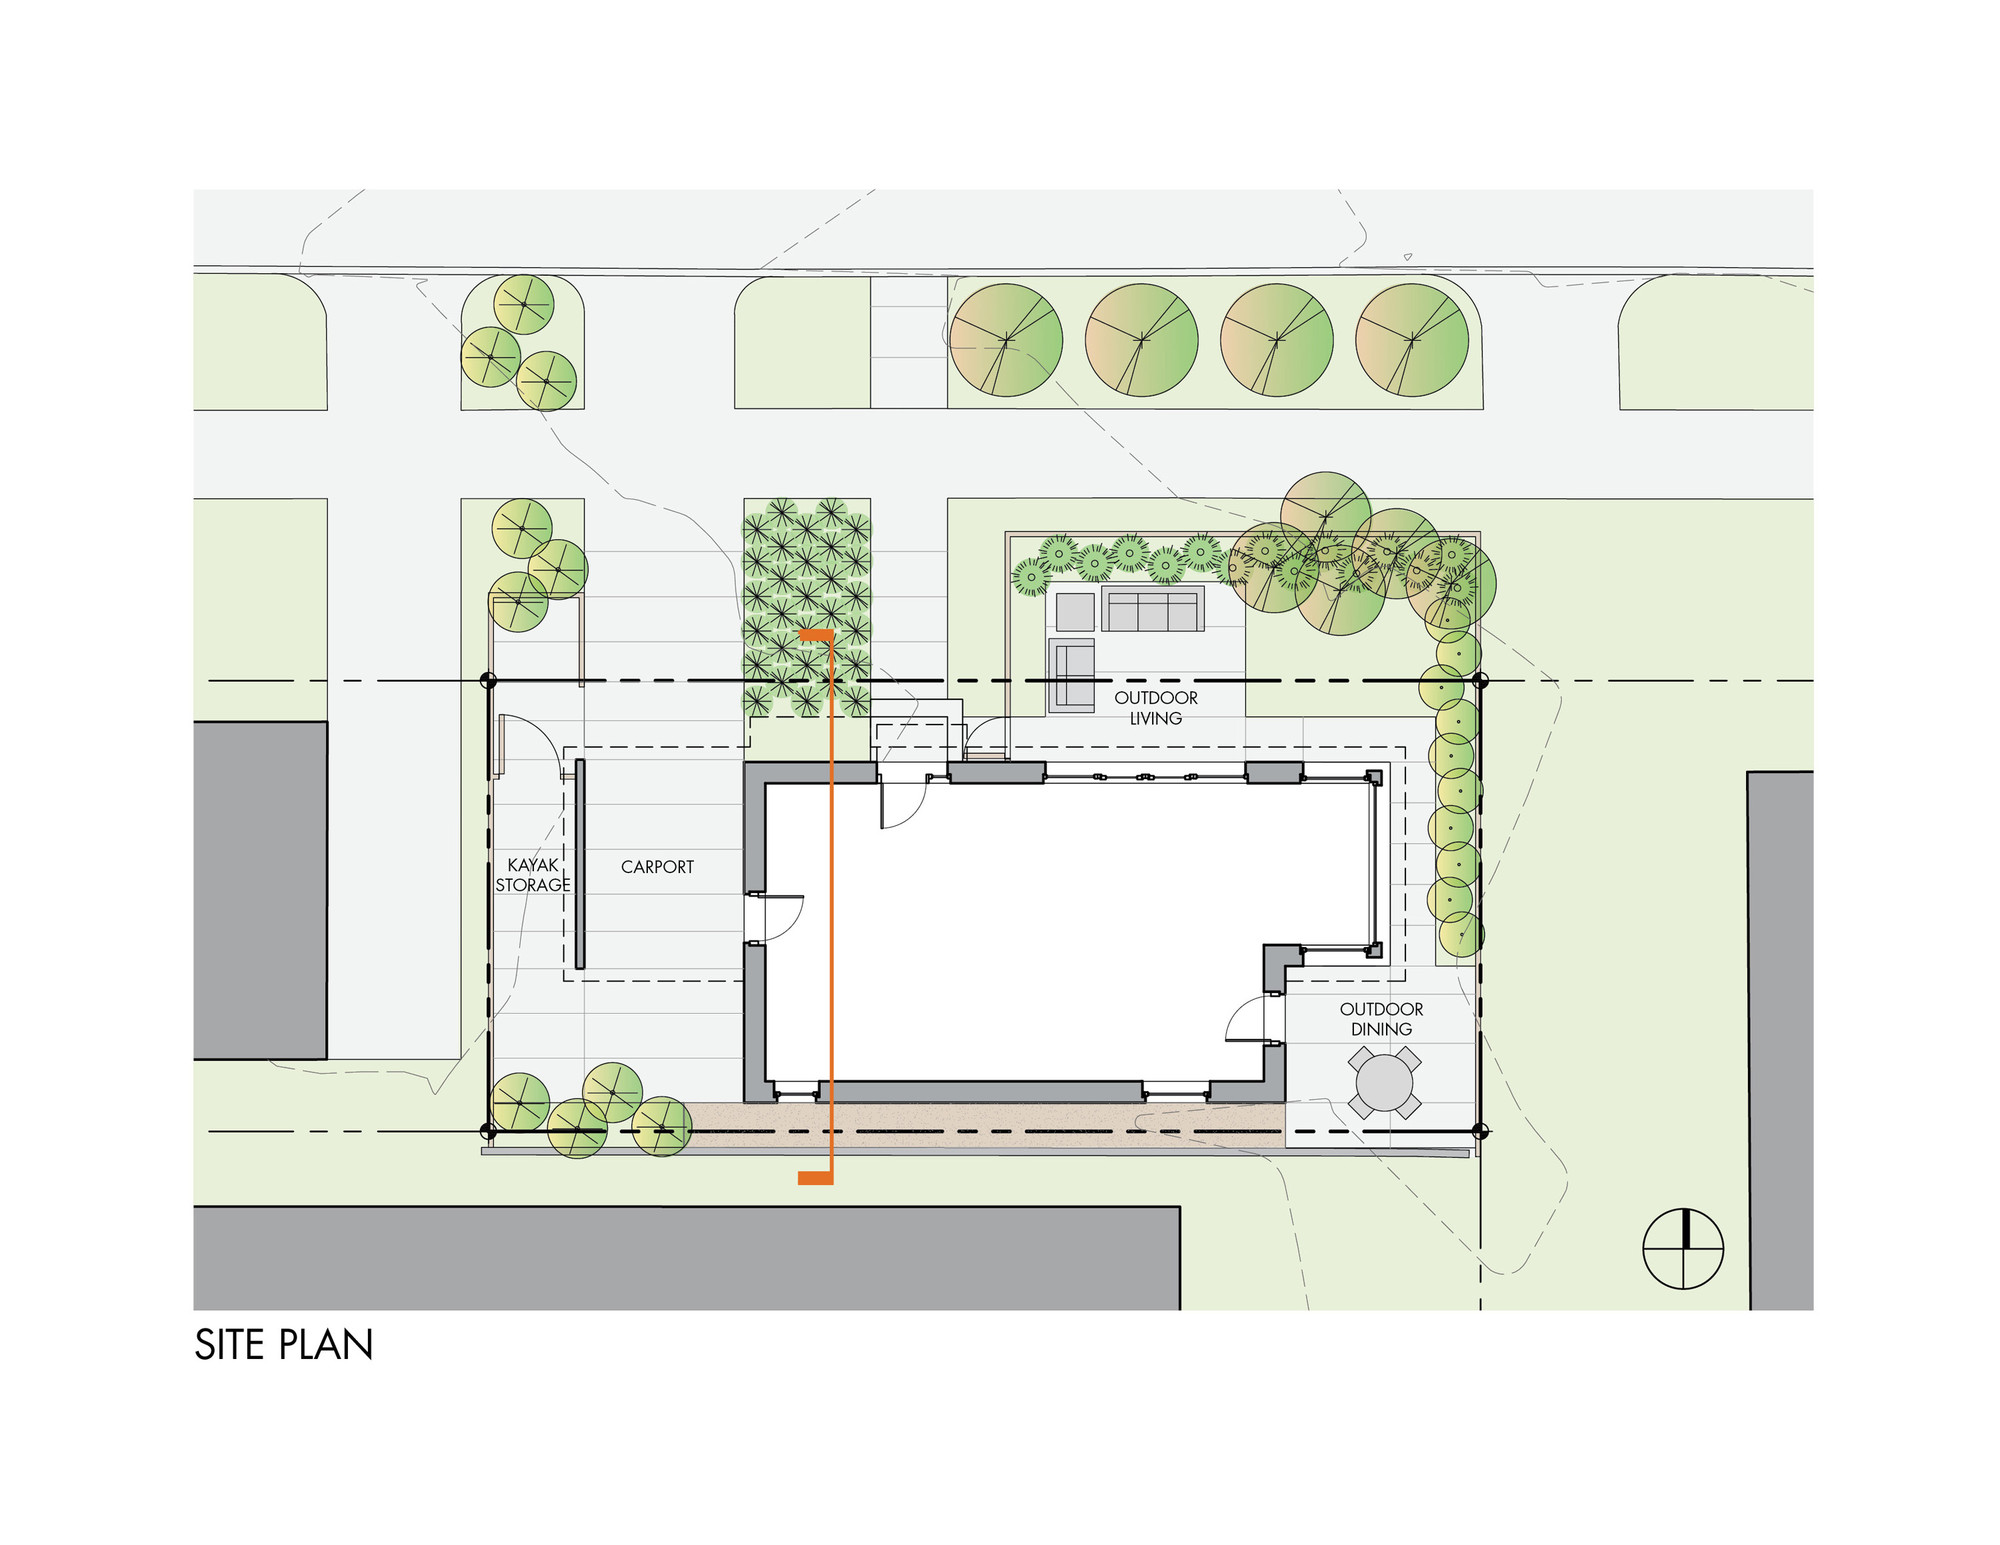 Patio Floor Plans Gallery Of Park Passive House Nk Architects 12